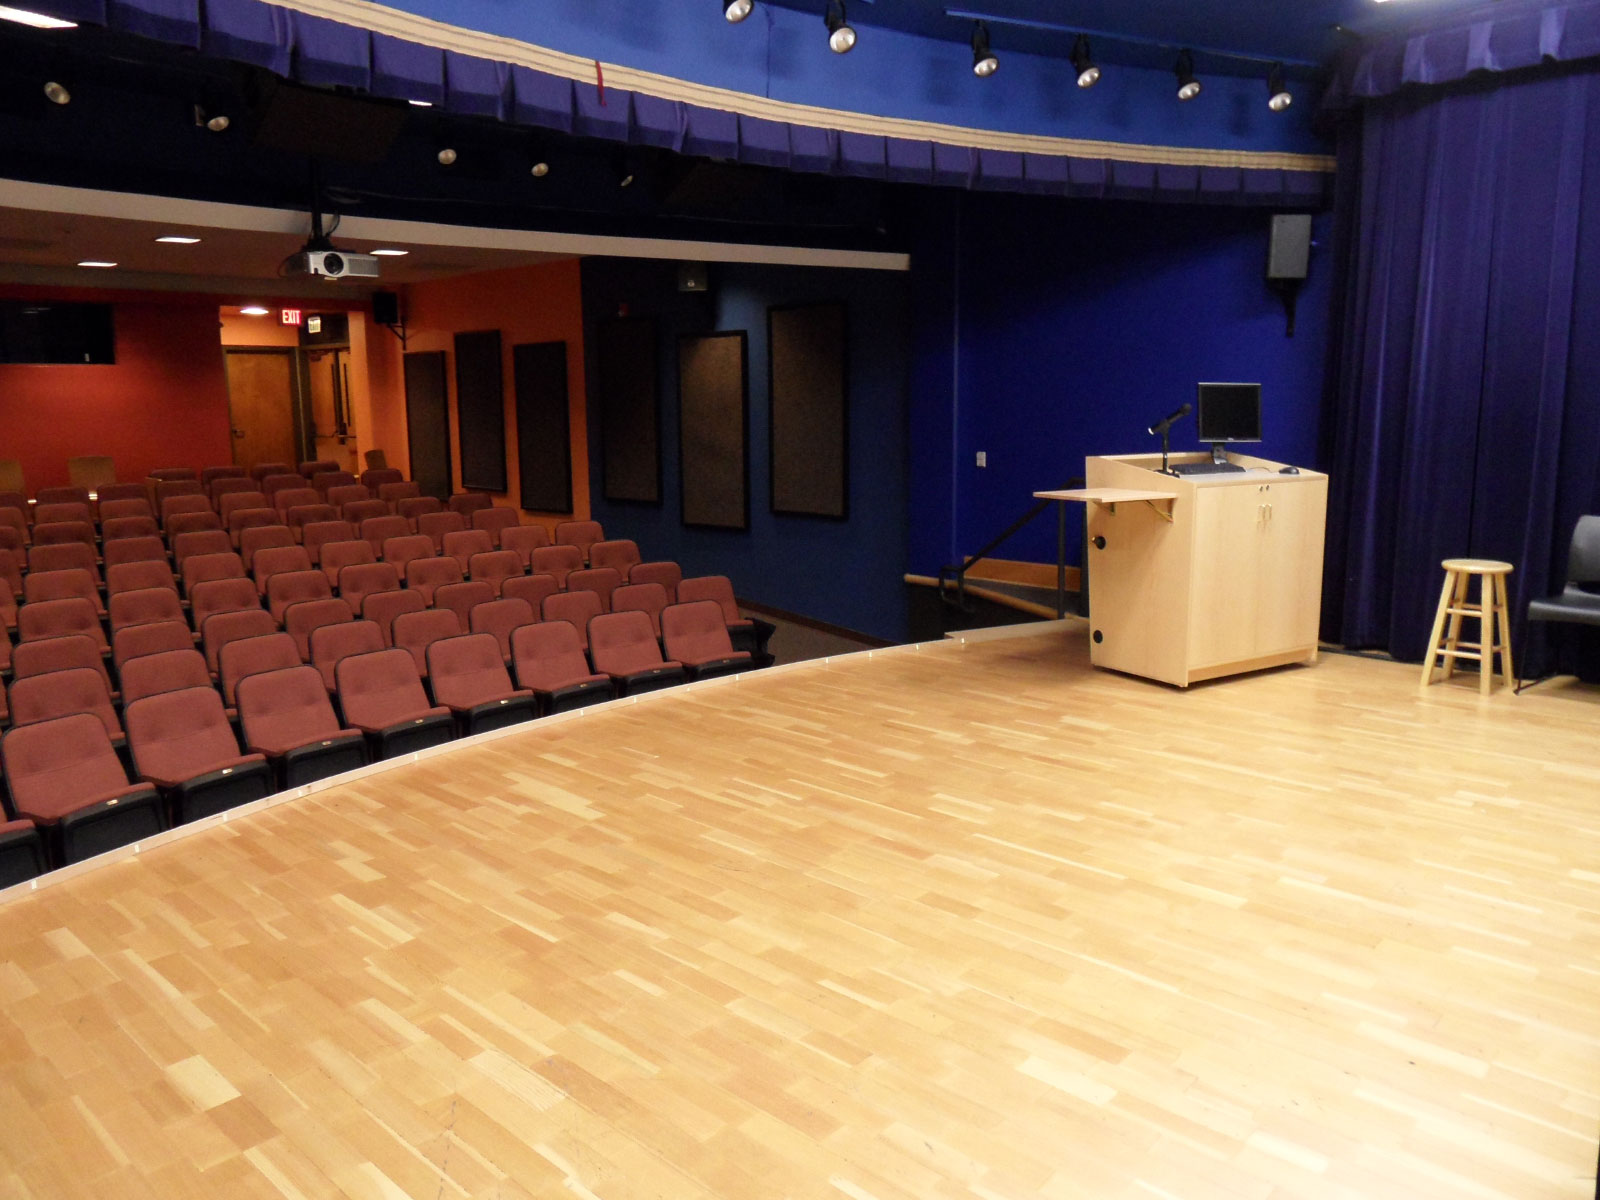 The McLoughlin Auditorium, a large theatre space with dozens of seats, located at the Oregon City campus